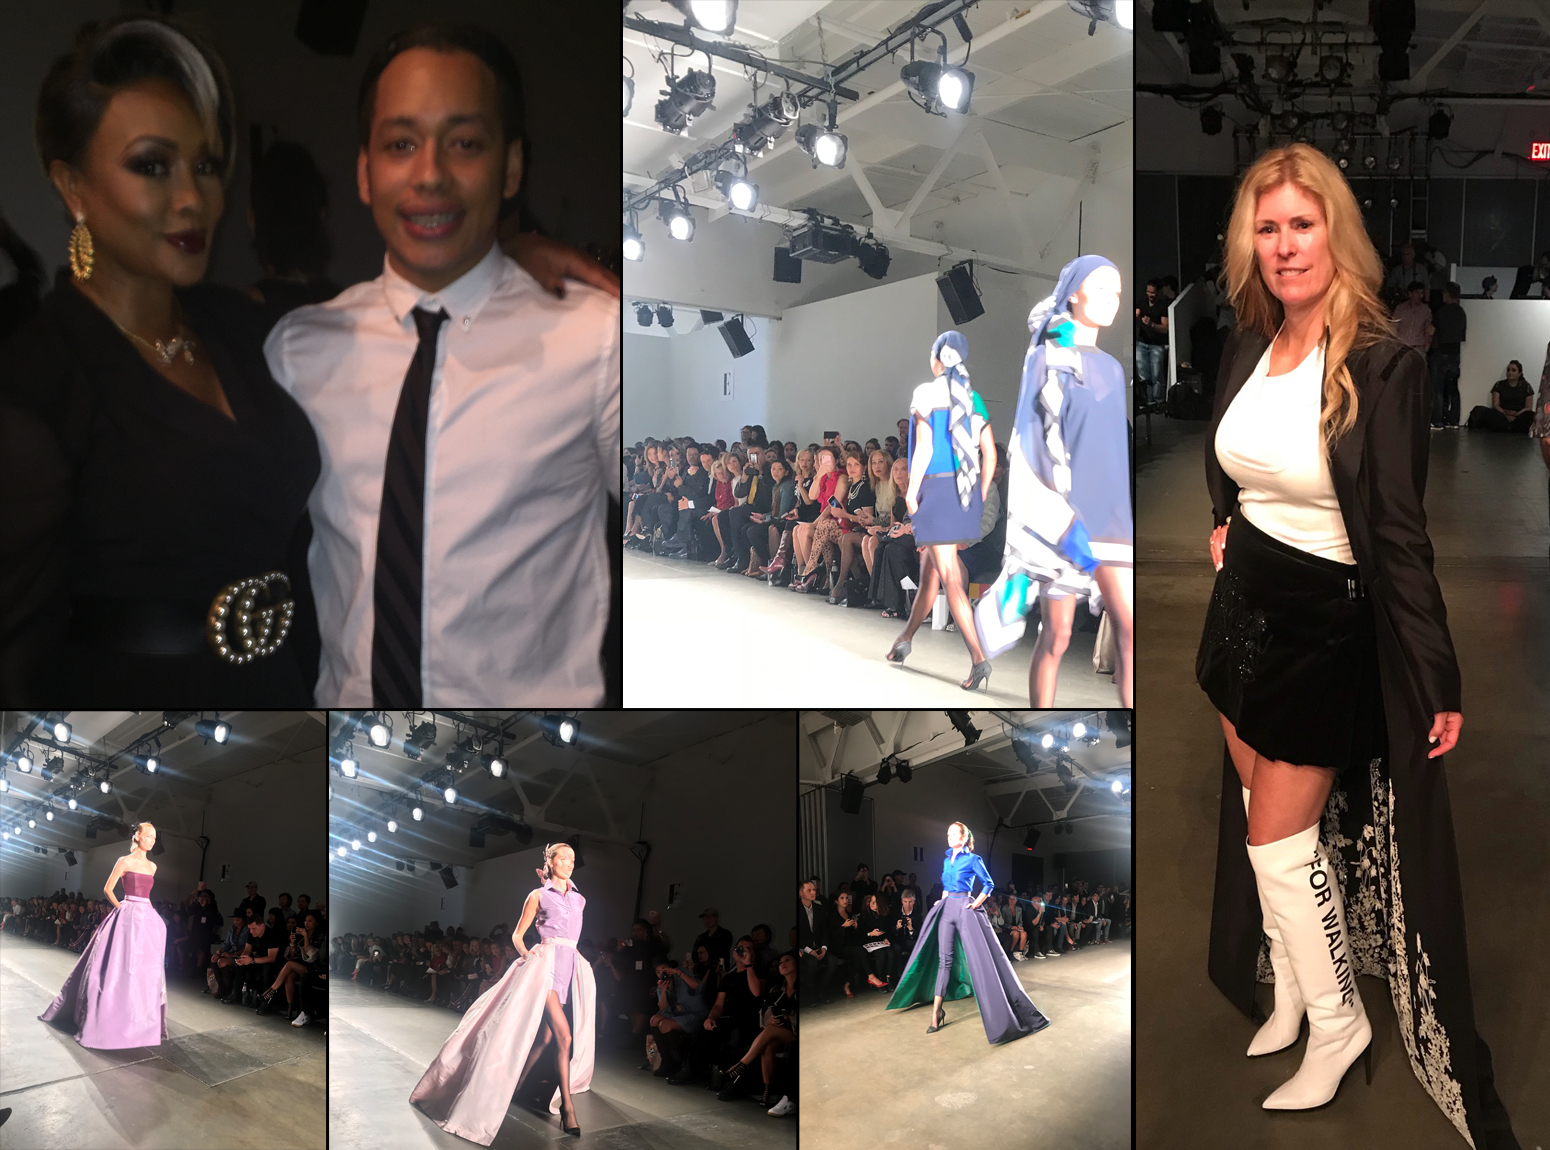 Clockwise: Vivica Fox with Foster from Studio SHK, The Housewives of NYC sitting front row, Sherry Hope-Kennedy wearing Zang Toi, and runway models showing the new Zang Toi collection.